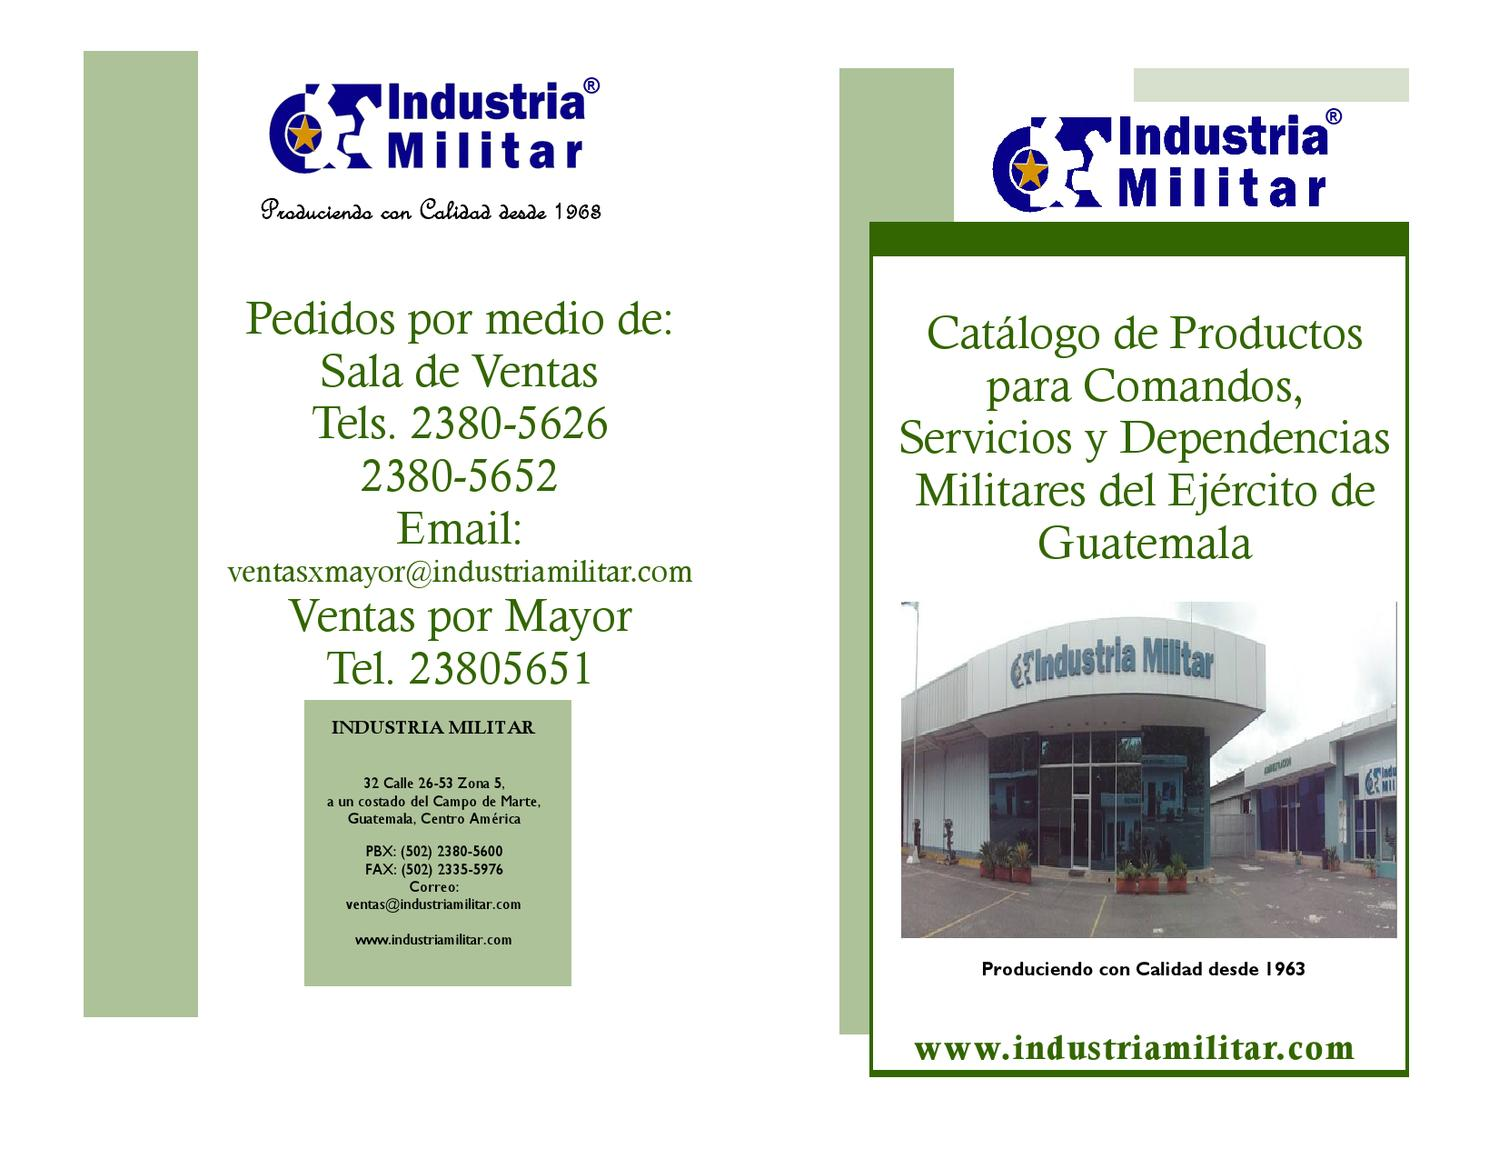 98afaa794c5f catalogo de productos industria militar by giovanni jimenez - issuu